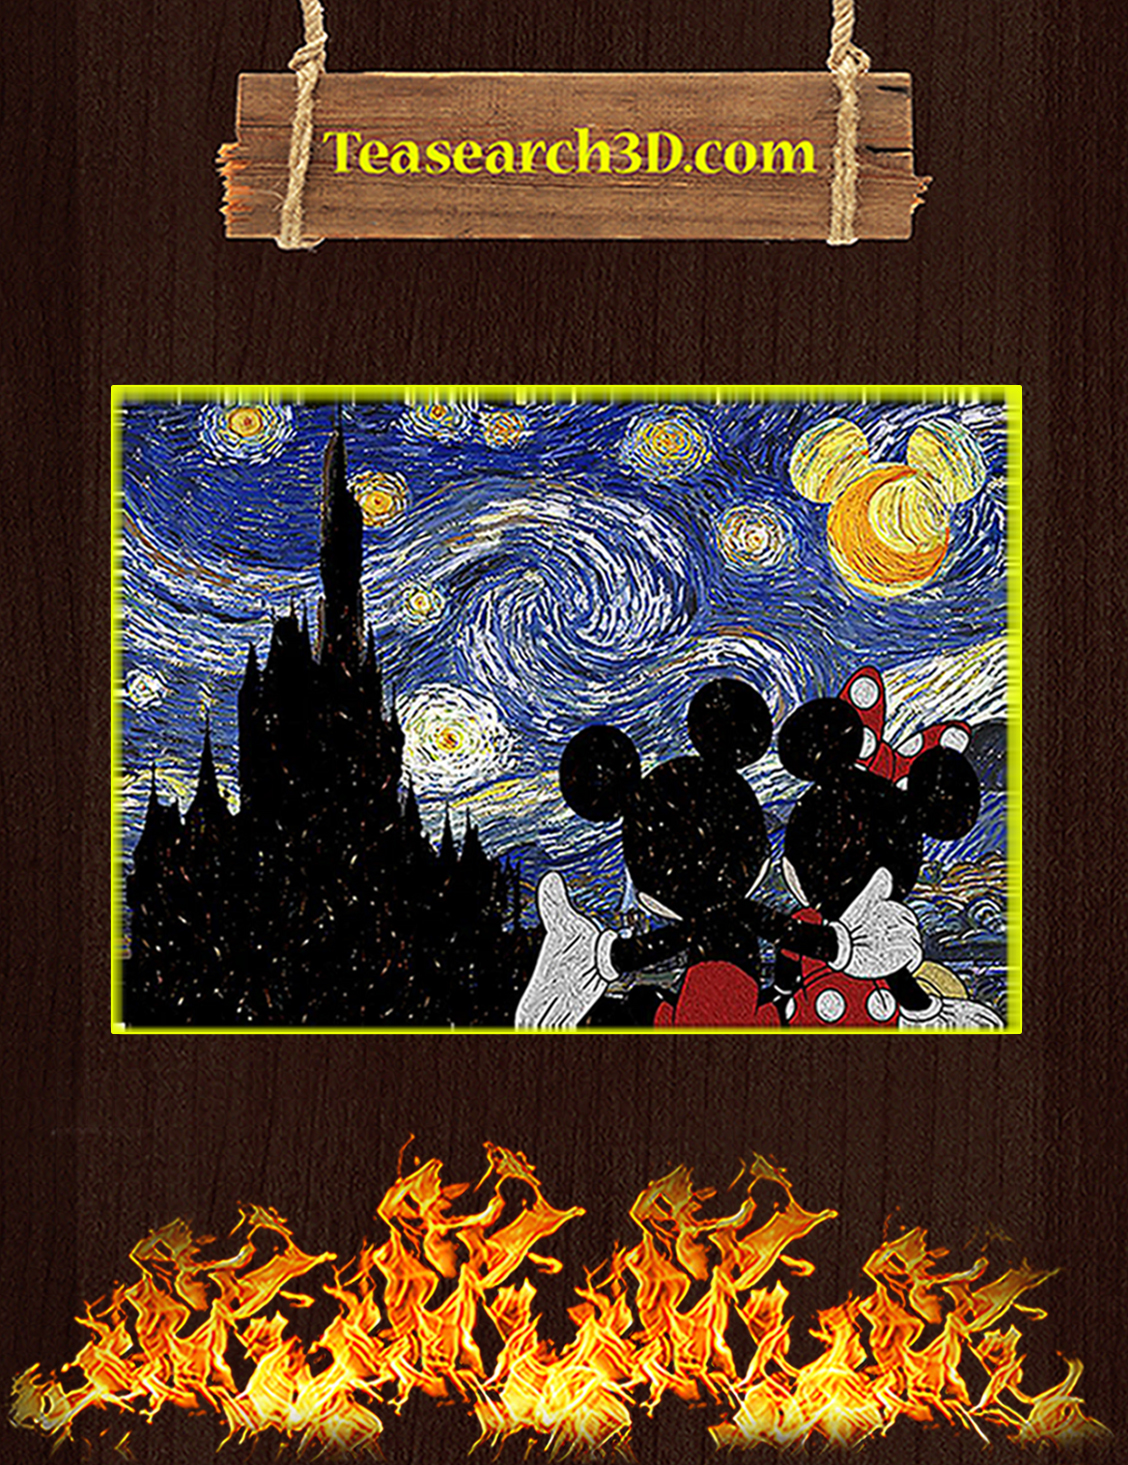 Mickey and minnie starry night poster A3